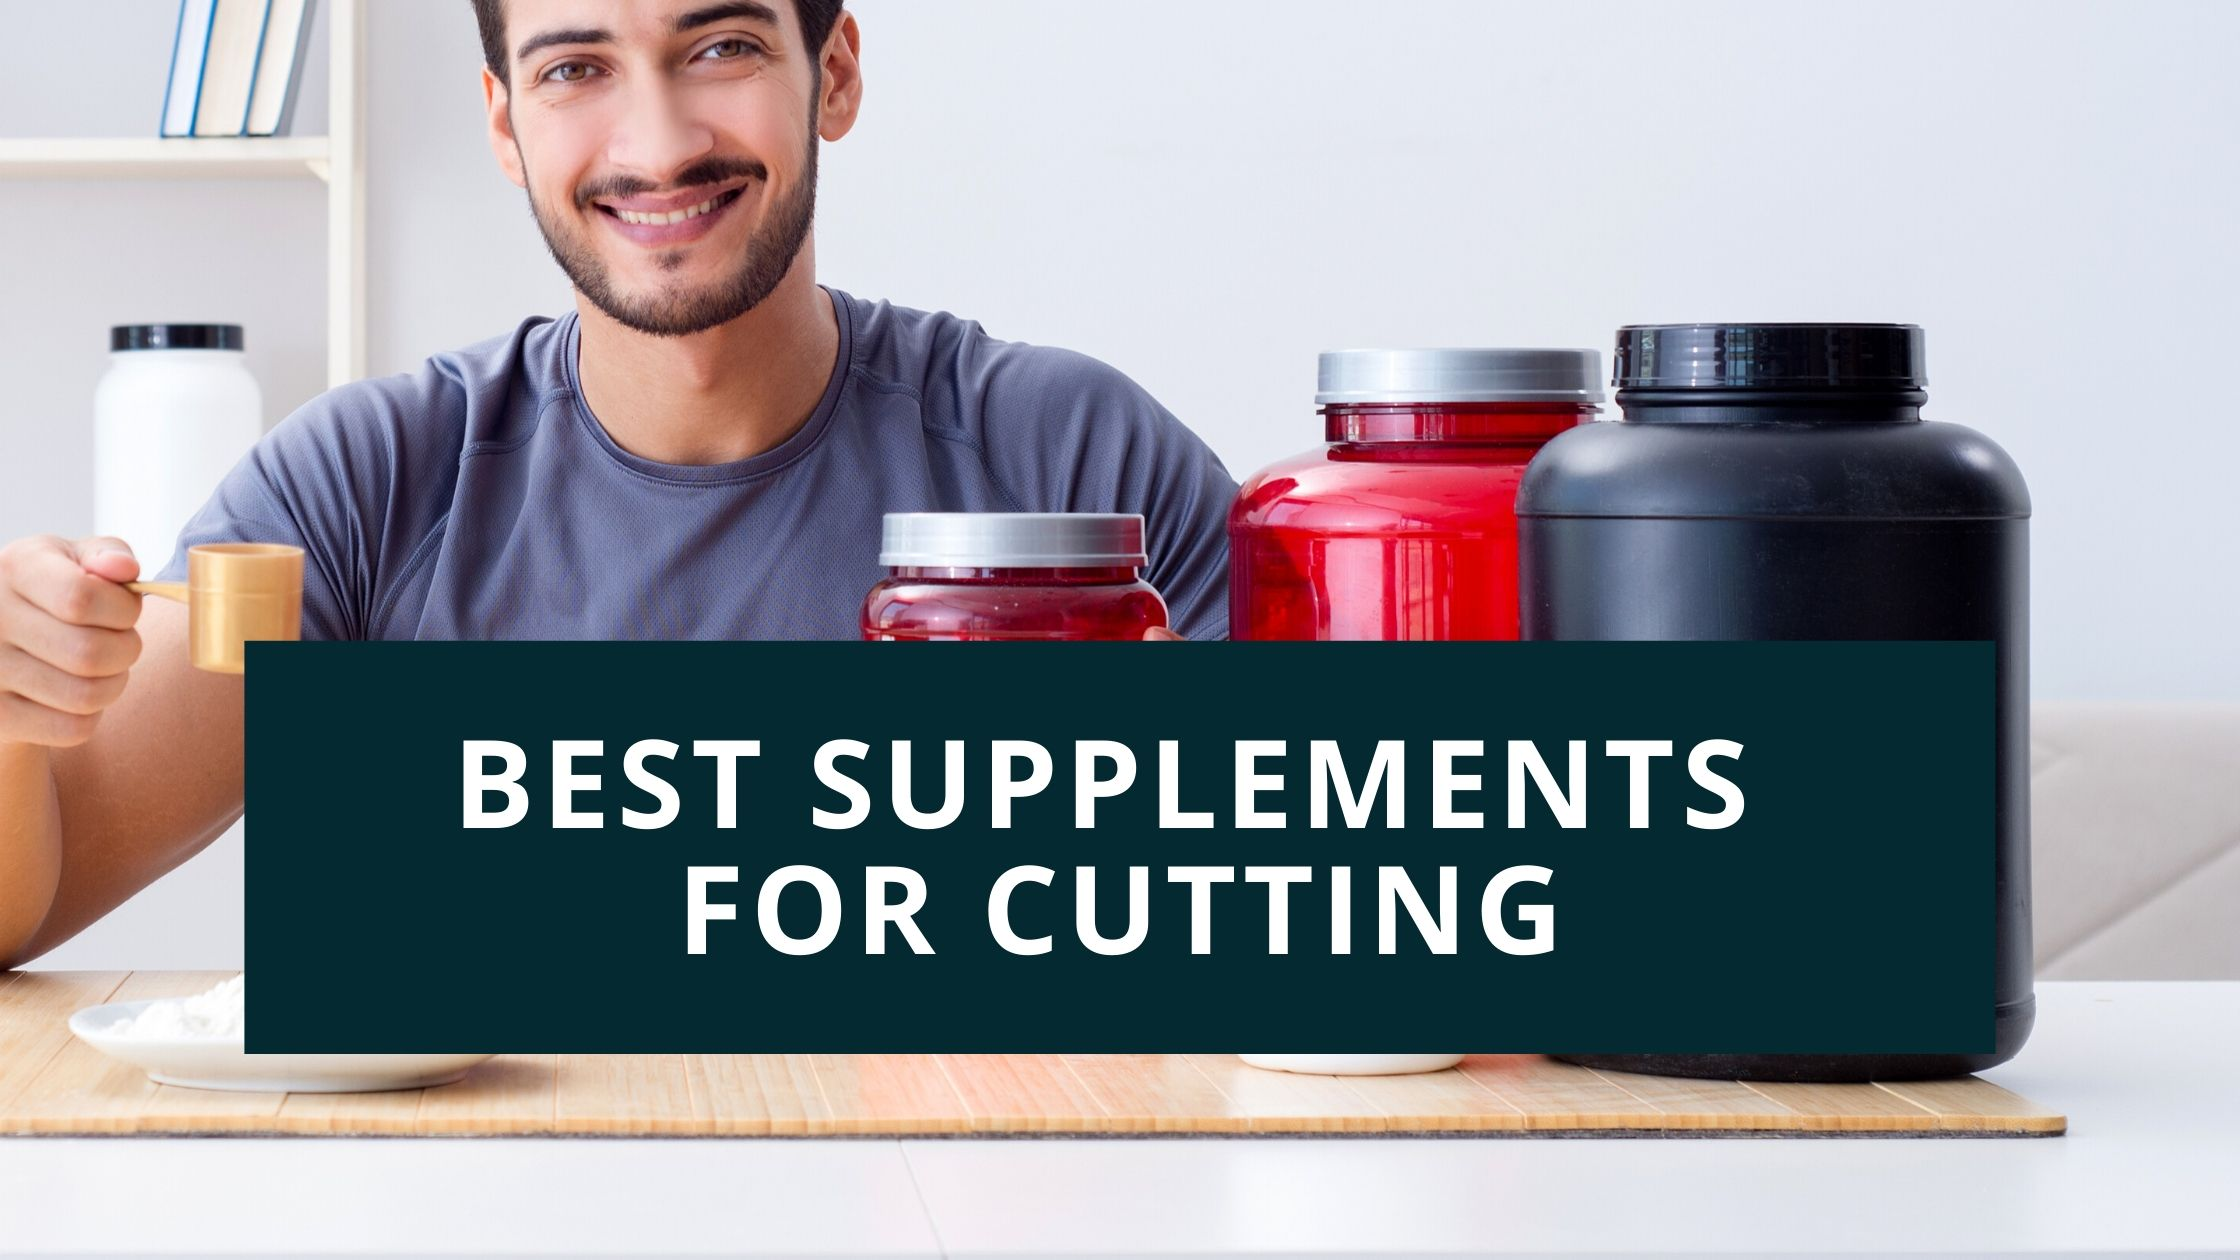 Best Supplements for Cutting